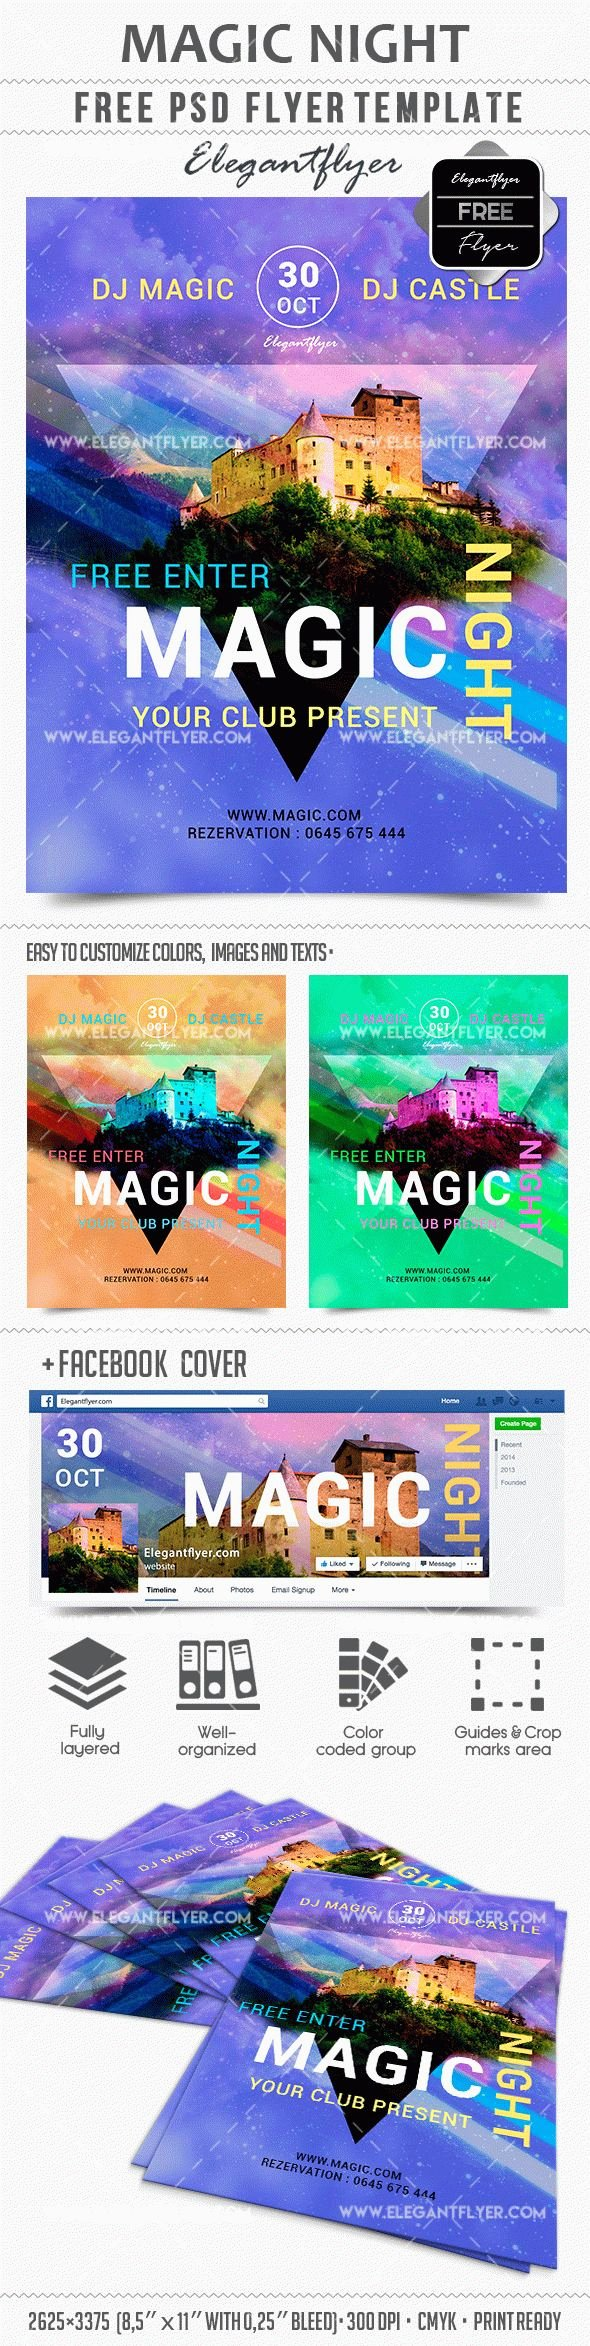 Free Download Flyer Template Magic Night – Free Psd